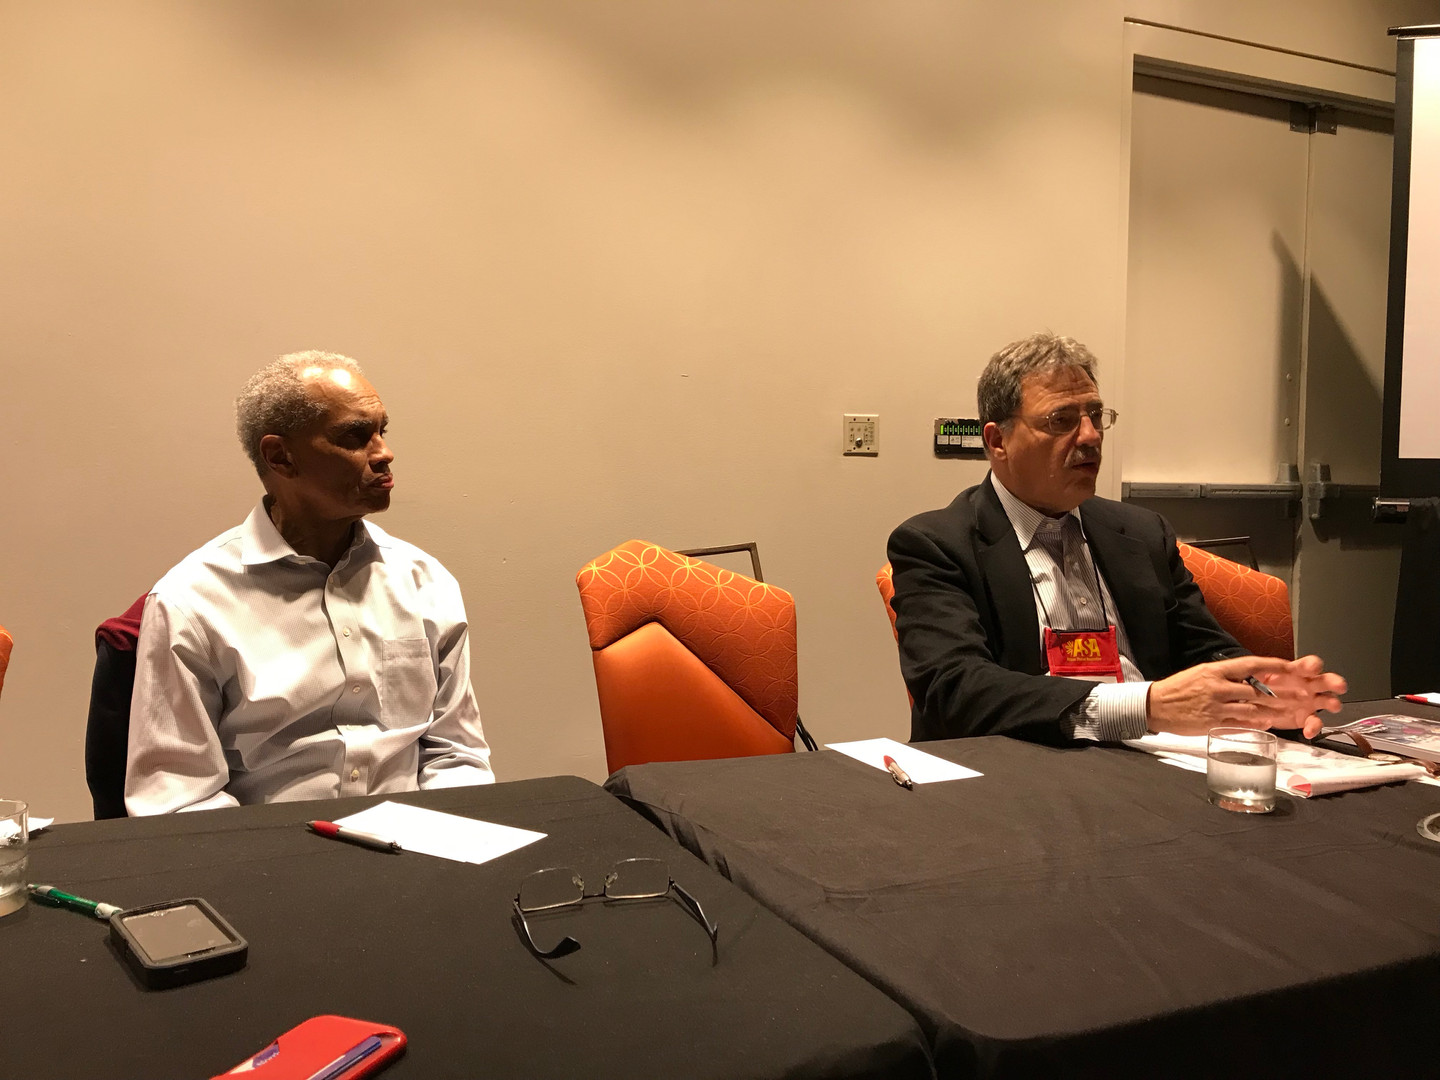 ASA 2018 Session on Ethiopia led by Richard Joseph and Larry Diamond